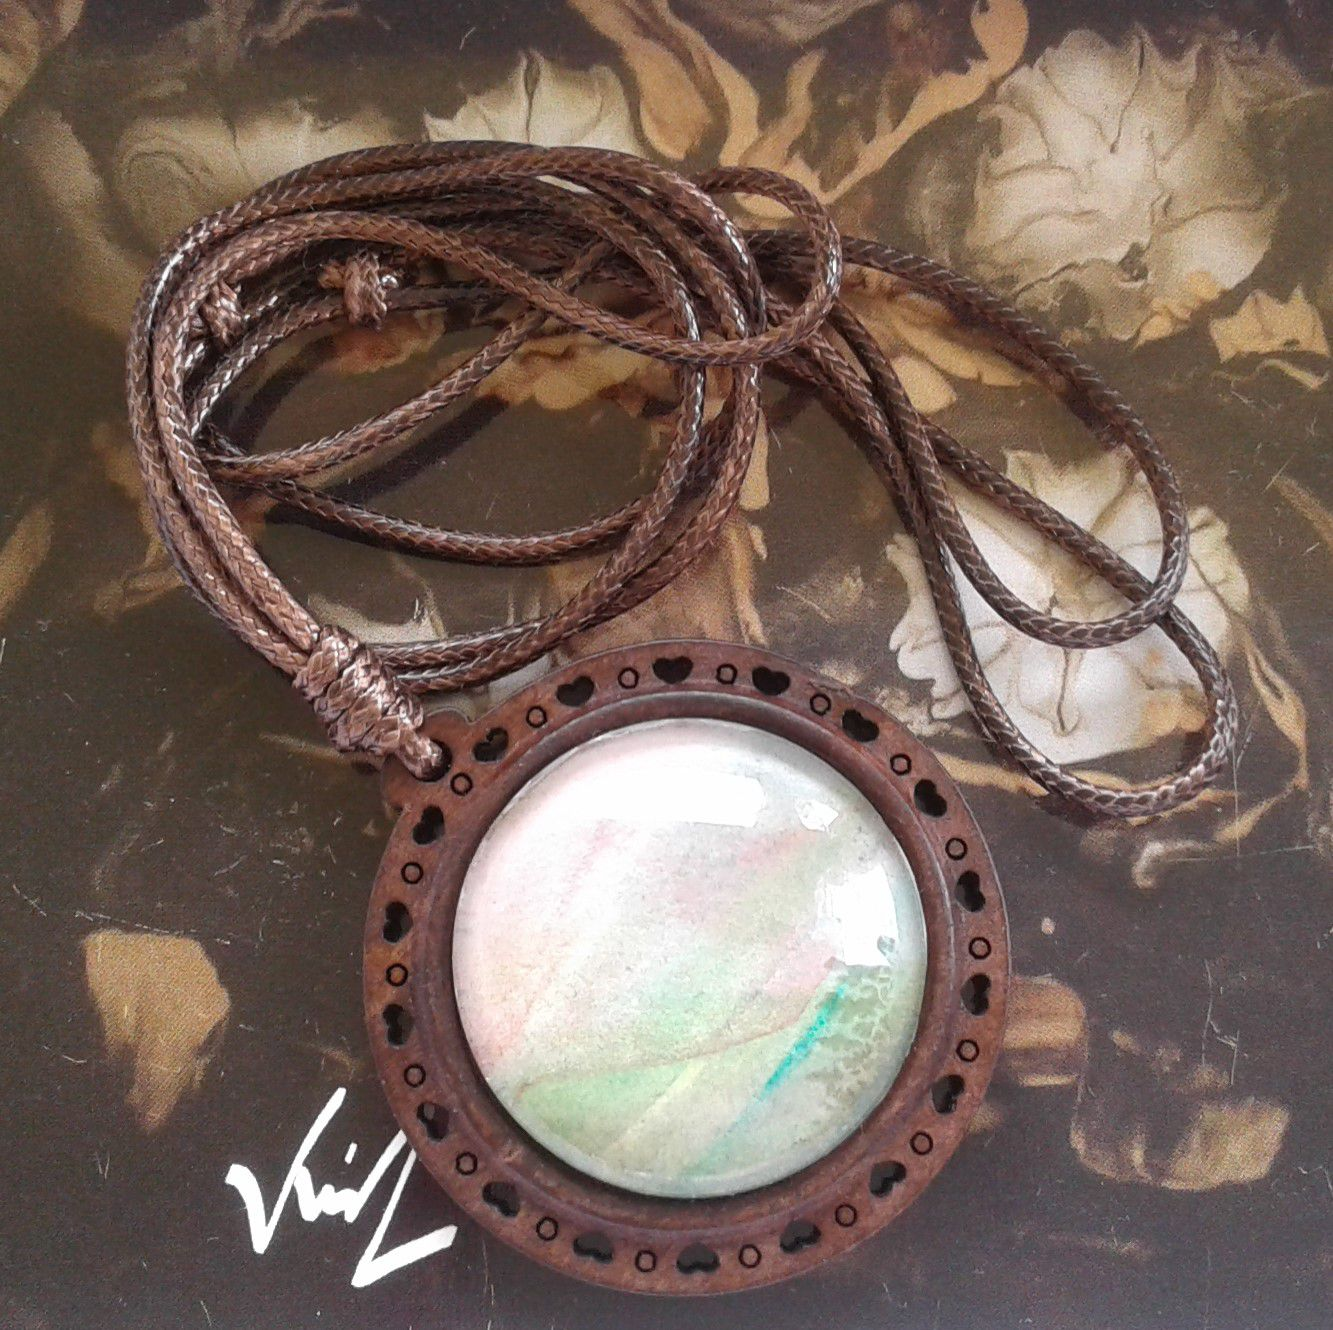 Fait mains en france, par artiste peintre,aquarelle originale isabelle k,rouge marron vert,pendentif bois,coeurs ouvragé,cabochon rond 25mm,cordon coton marron ajustable,boho bobo gothique,mode fashion punk,edouardien contemporain,art deco moderne,cadeau fete anniversaire,baroque